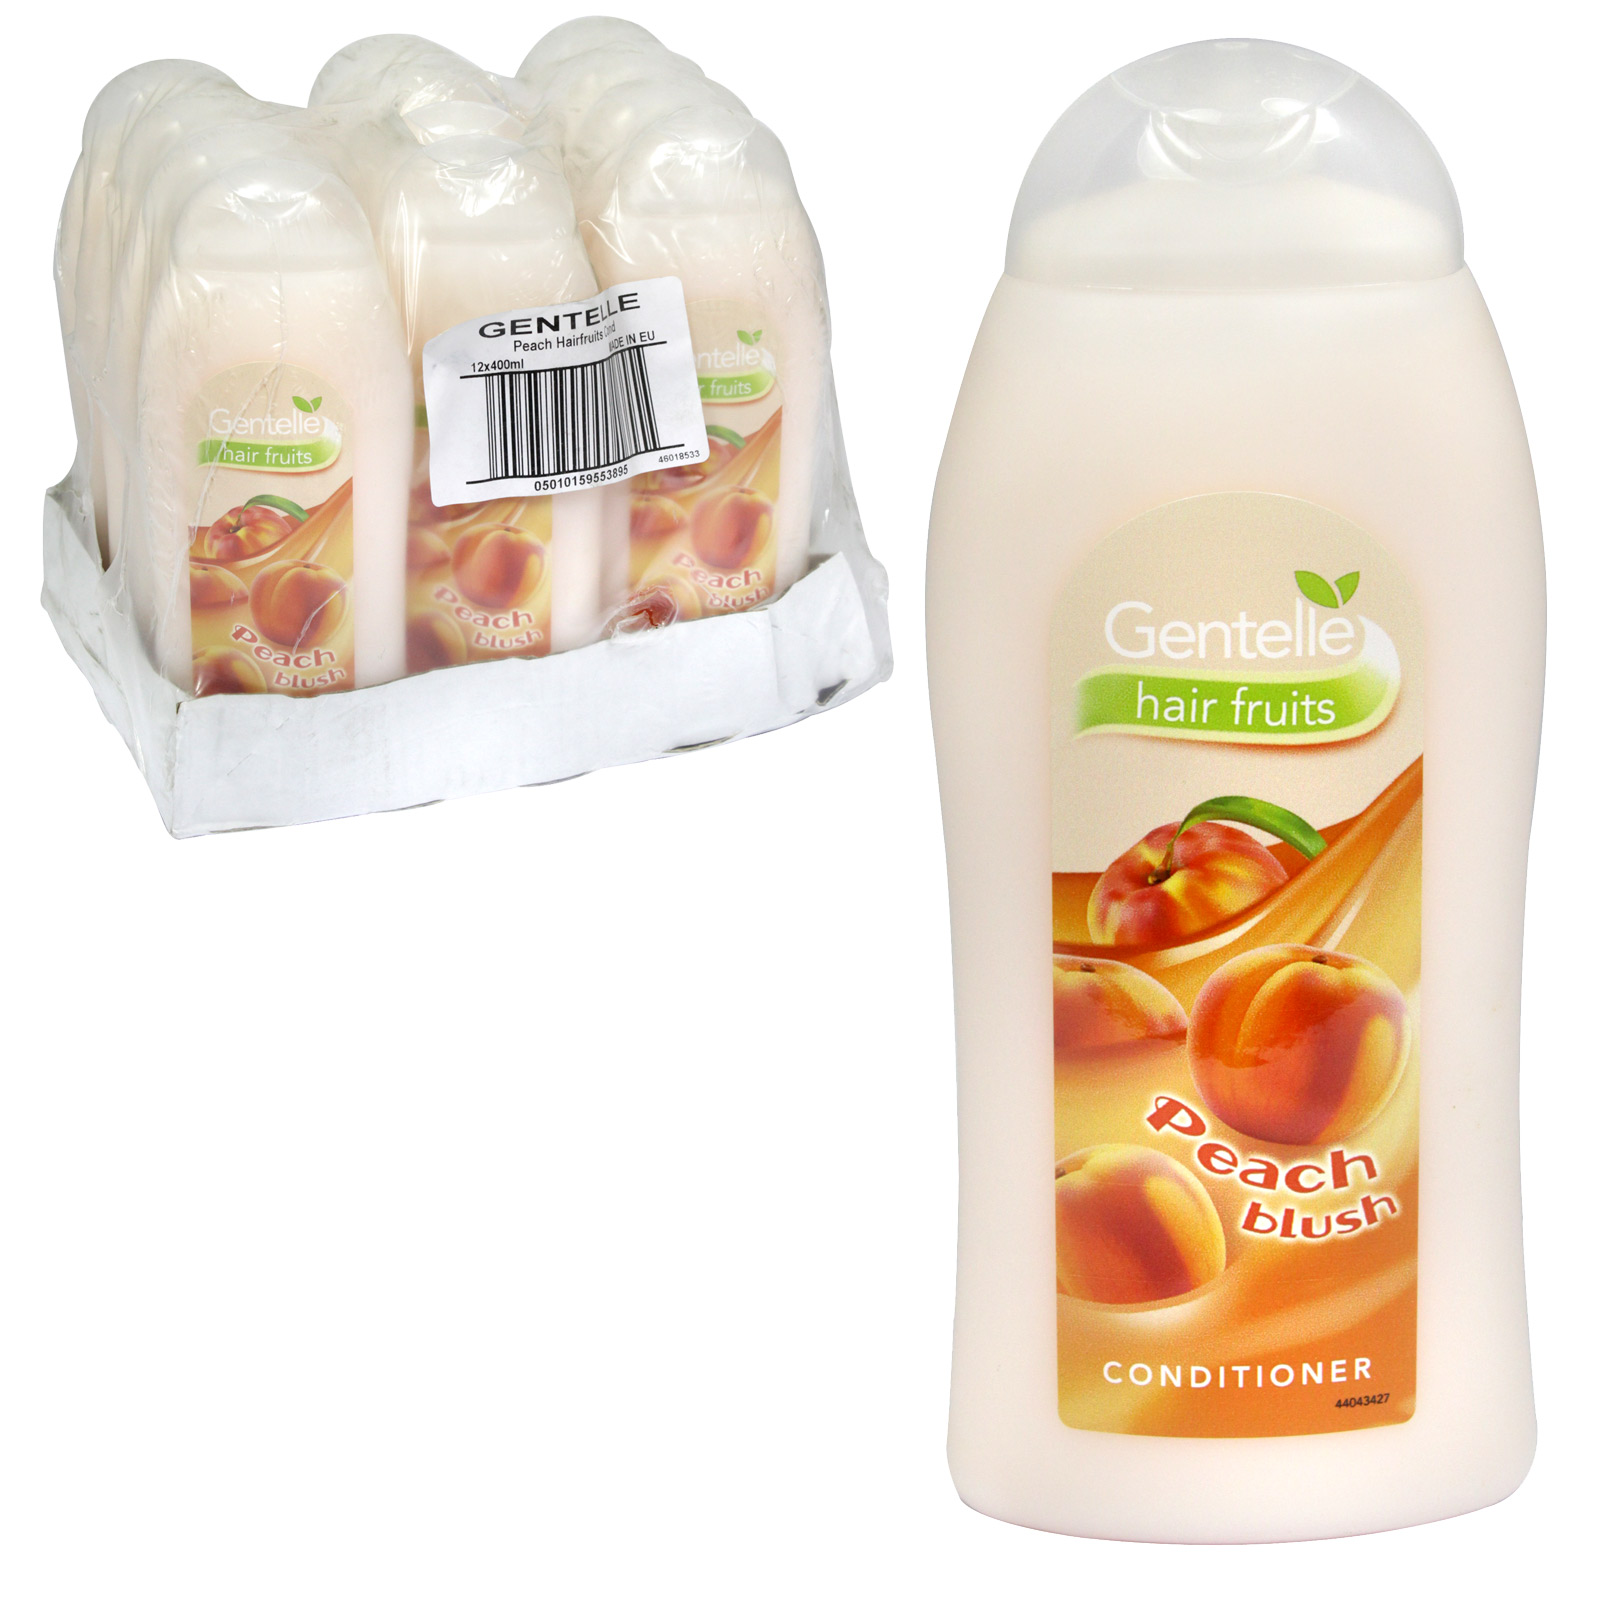 GENTELLE CONDITIONER 400ML PEACH BLUSH X12